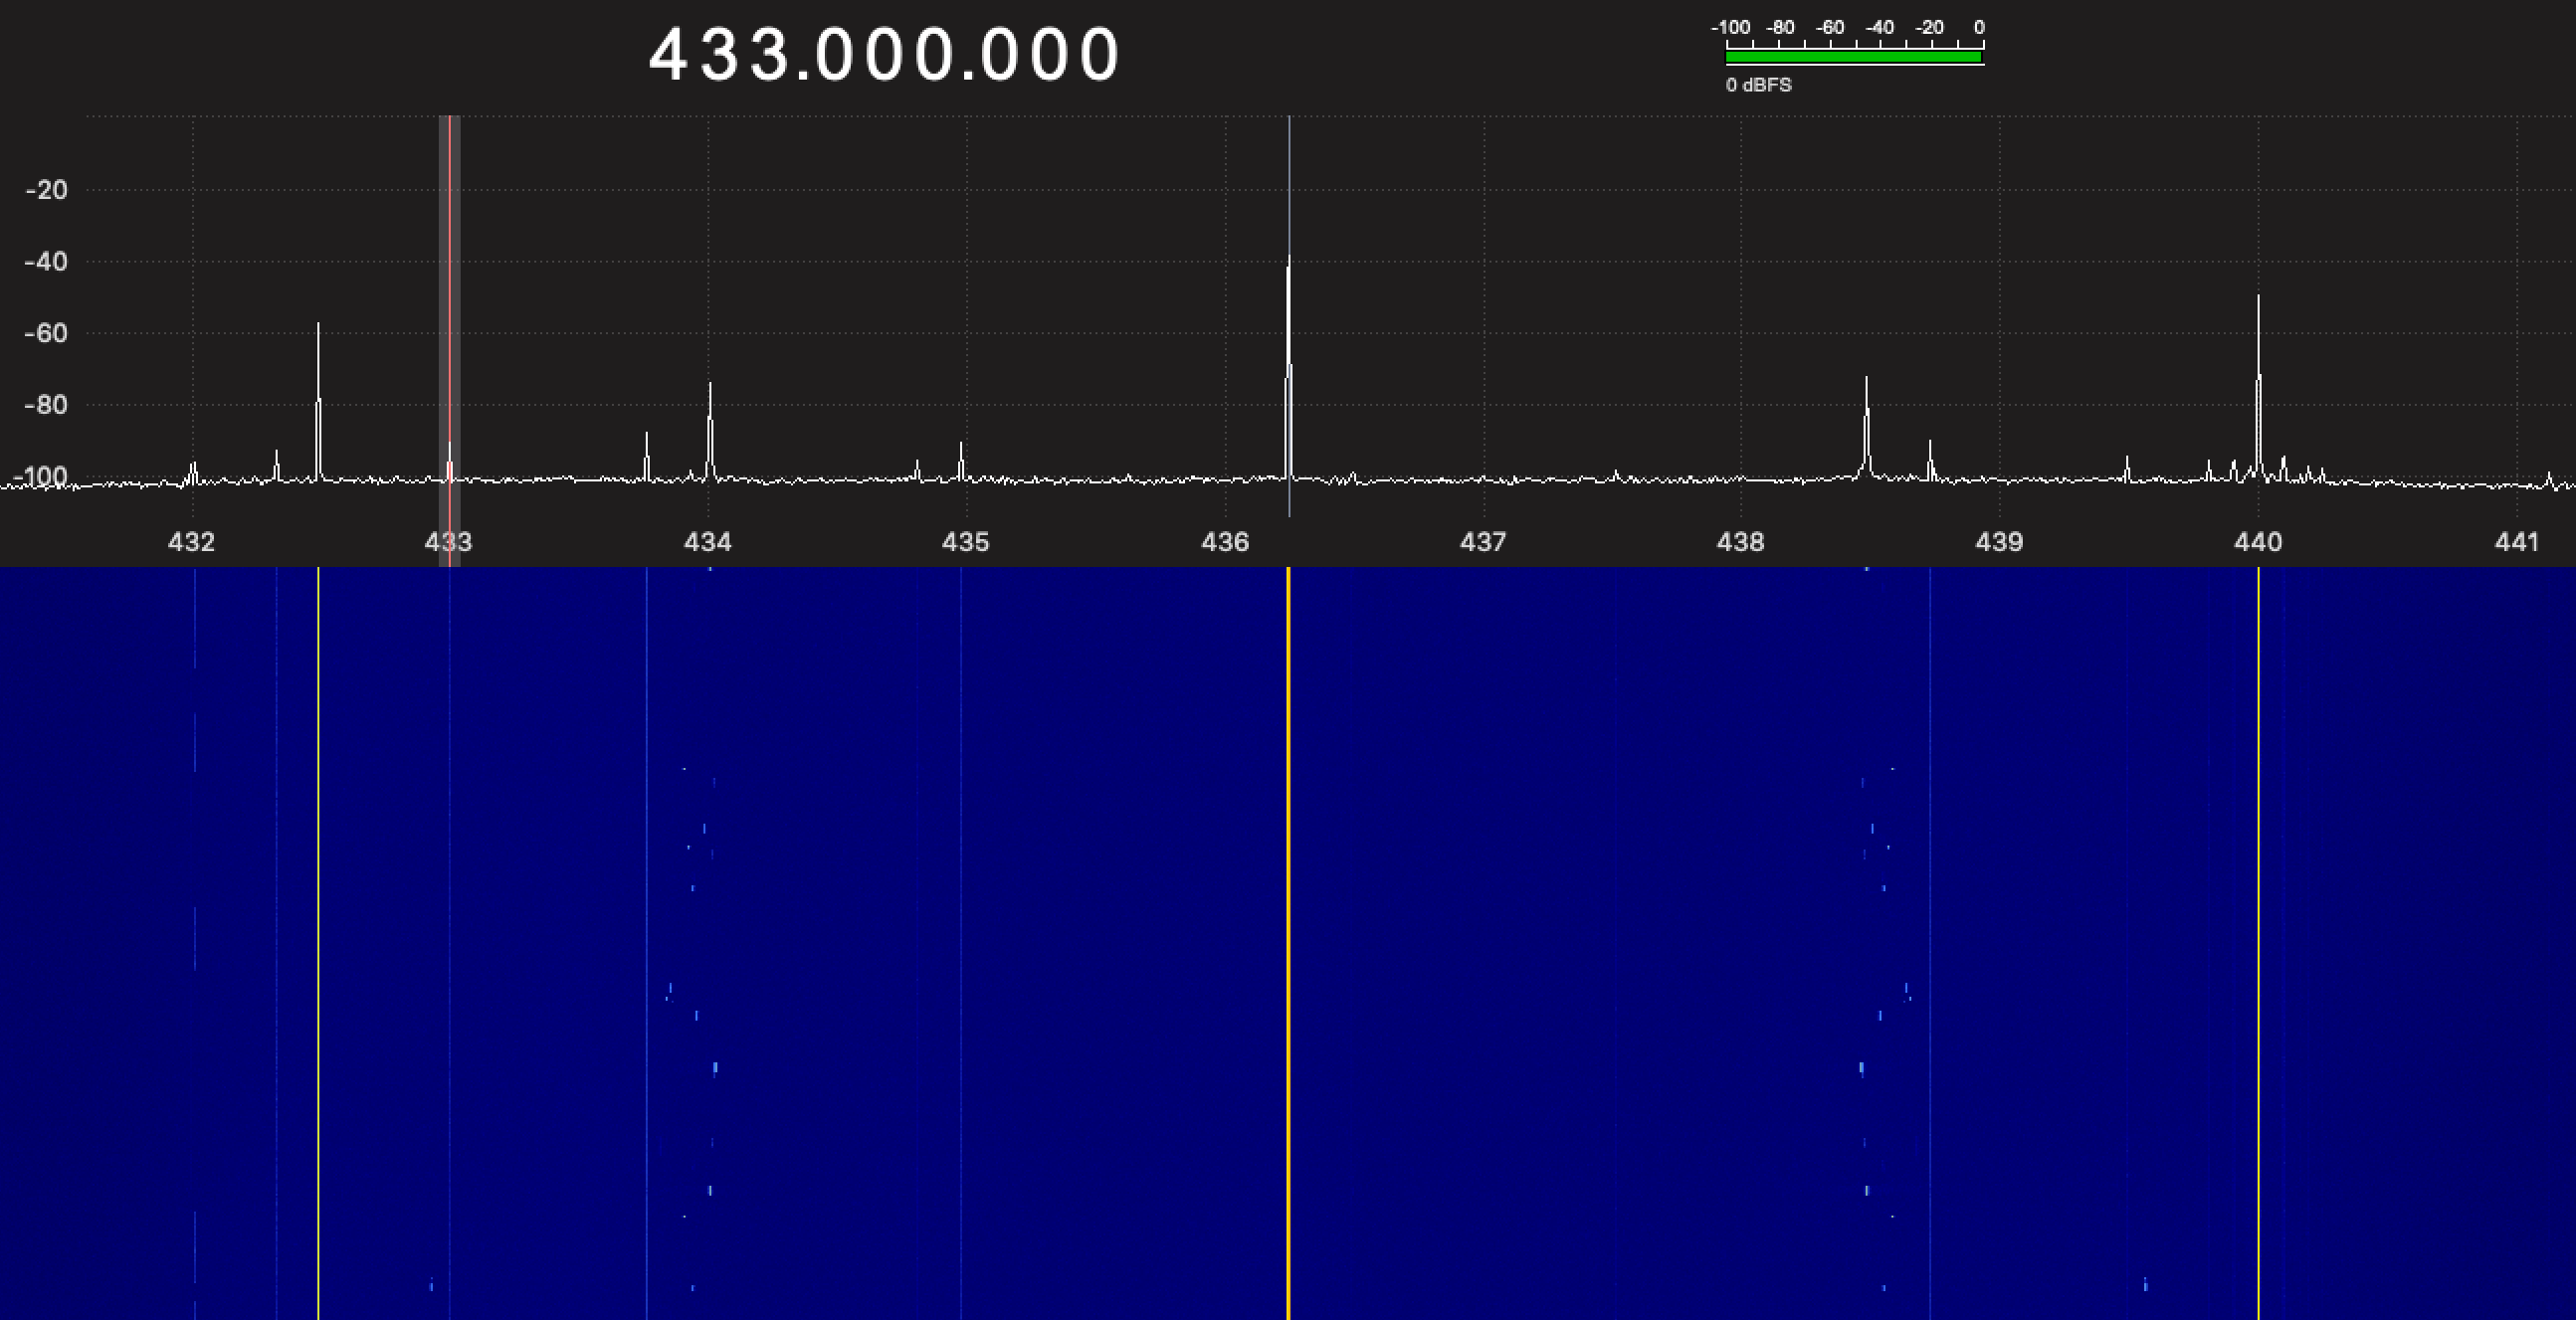 USB(?) interference via antenna from the lowest frequencies